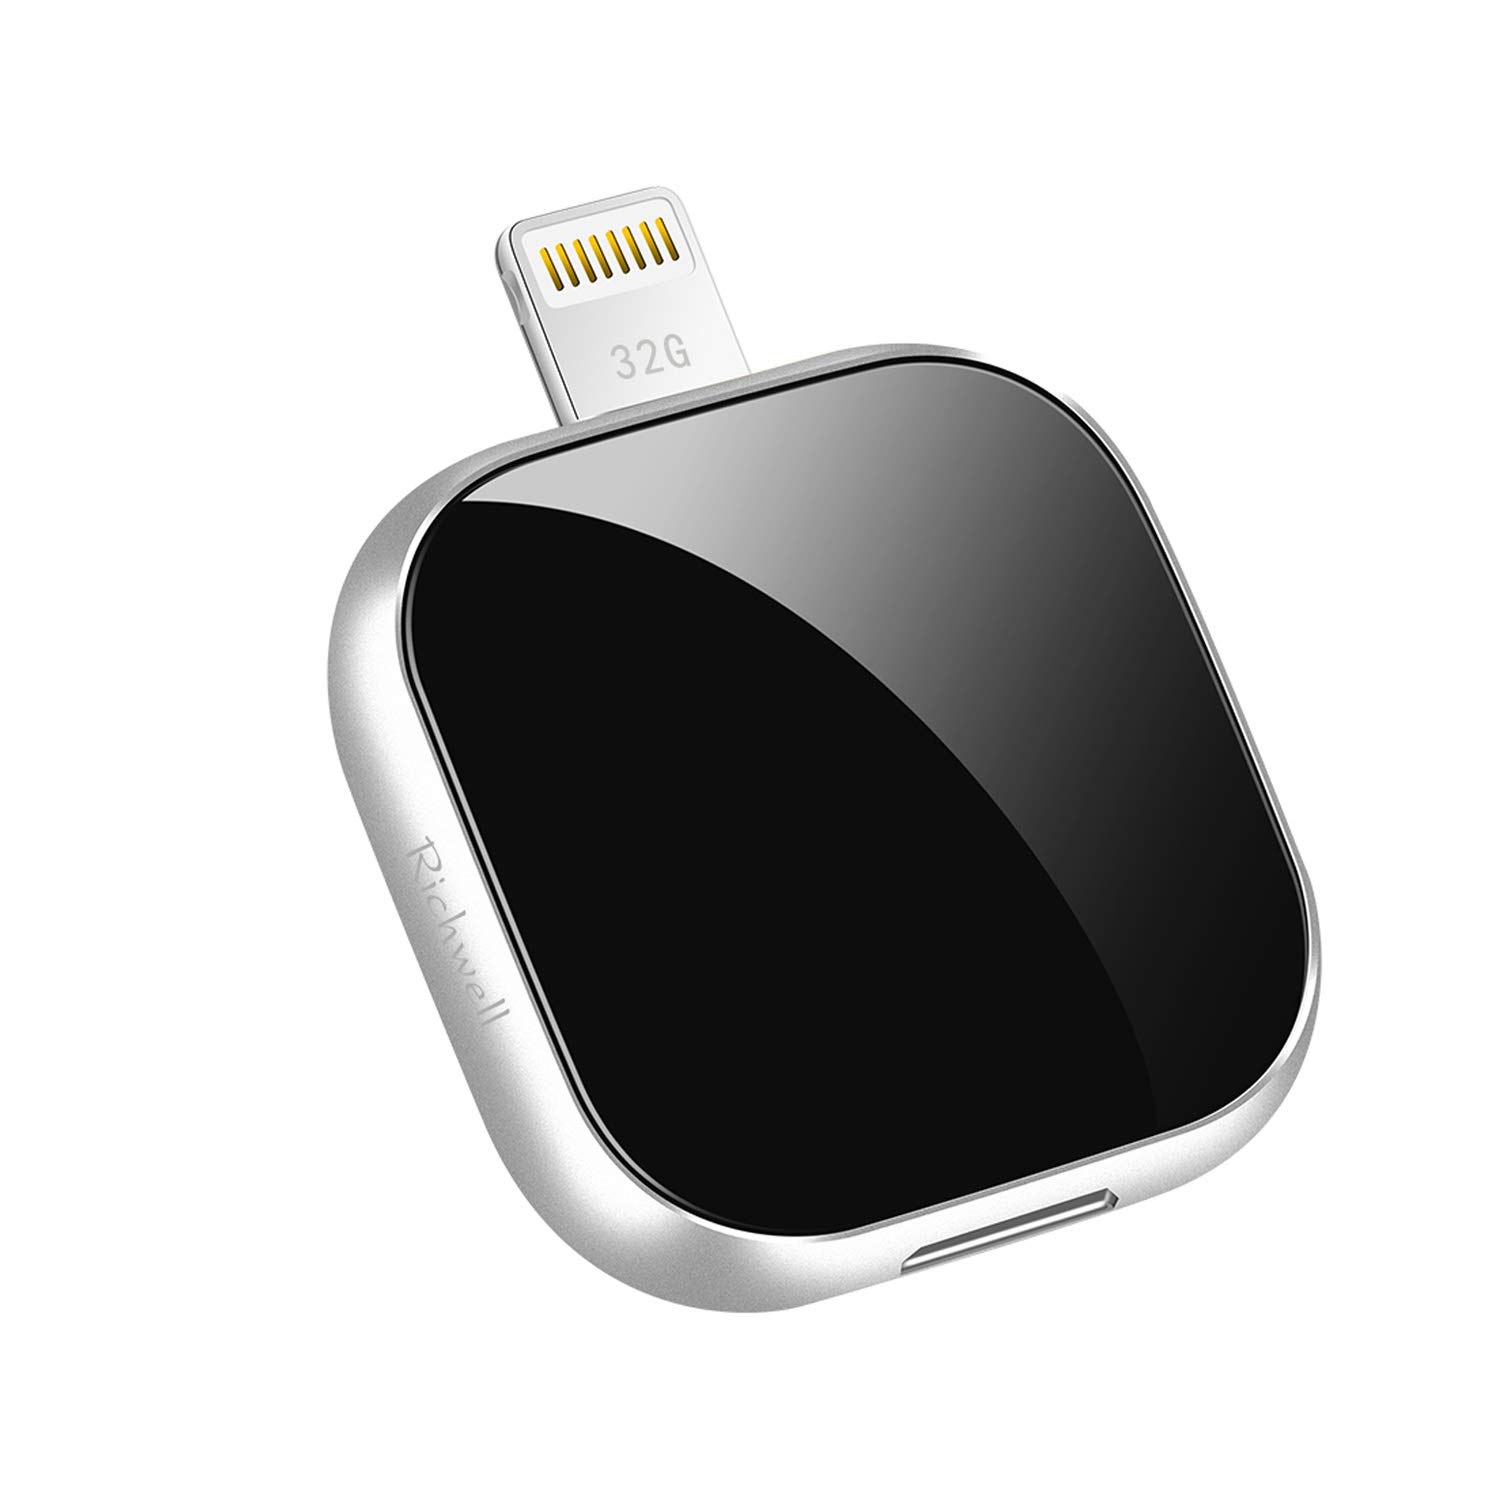 USB Flash Drive 32GB USB Stick Apply to iPhone Memory Stick External Expansion Storage Photo Stick 3in1 Richwell Compatible iPhone iPad iPod Mac iOS Android and PC External Drive (Black32GBH-FK)